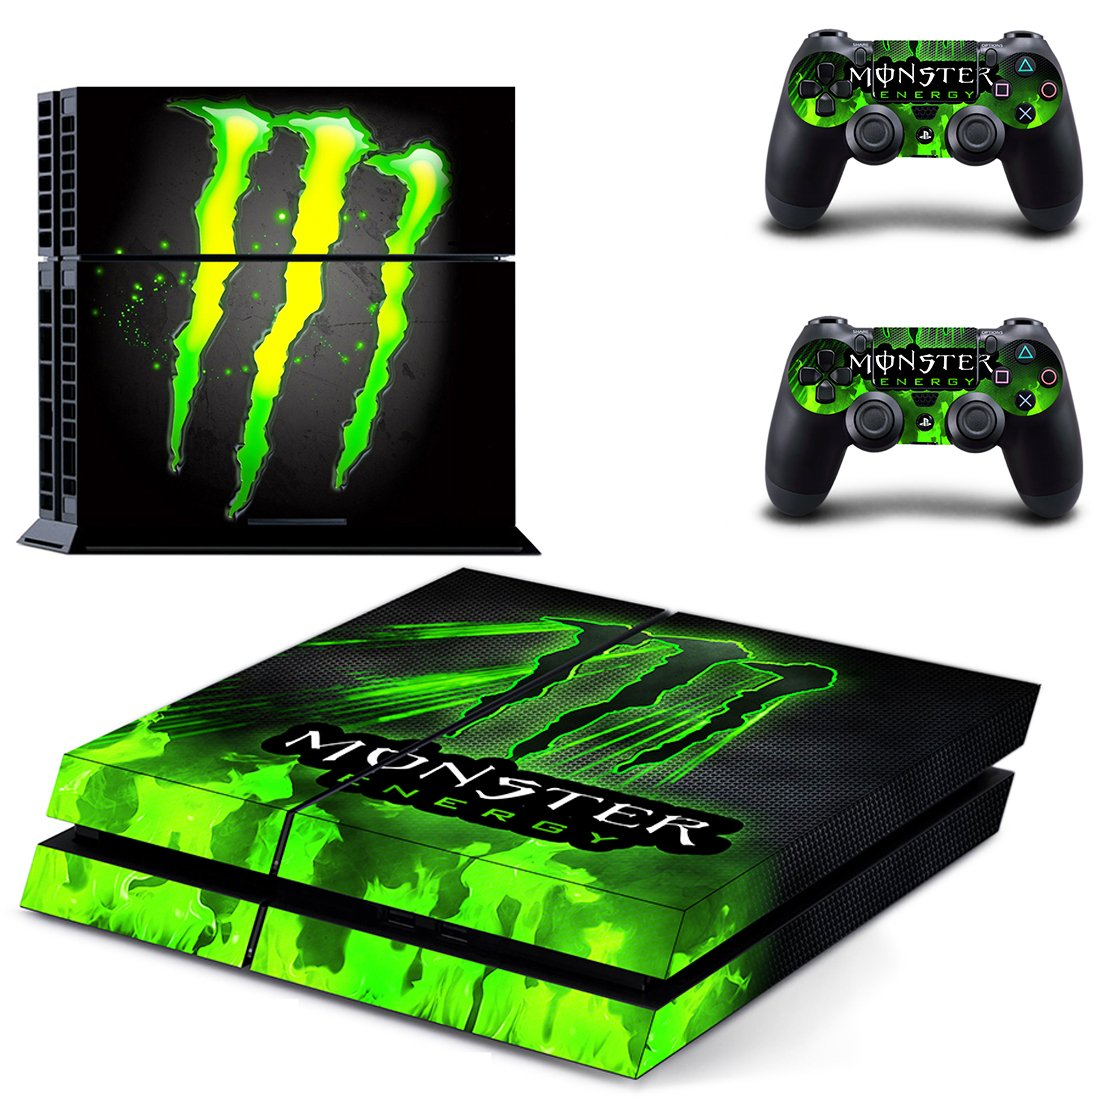 Monster Energy PS4 Skin Sticker Decals PS4 Console And Controllers Protect Your PS4